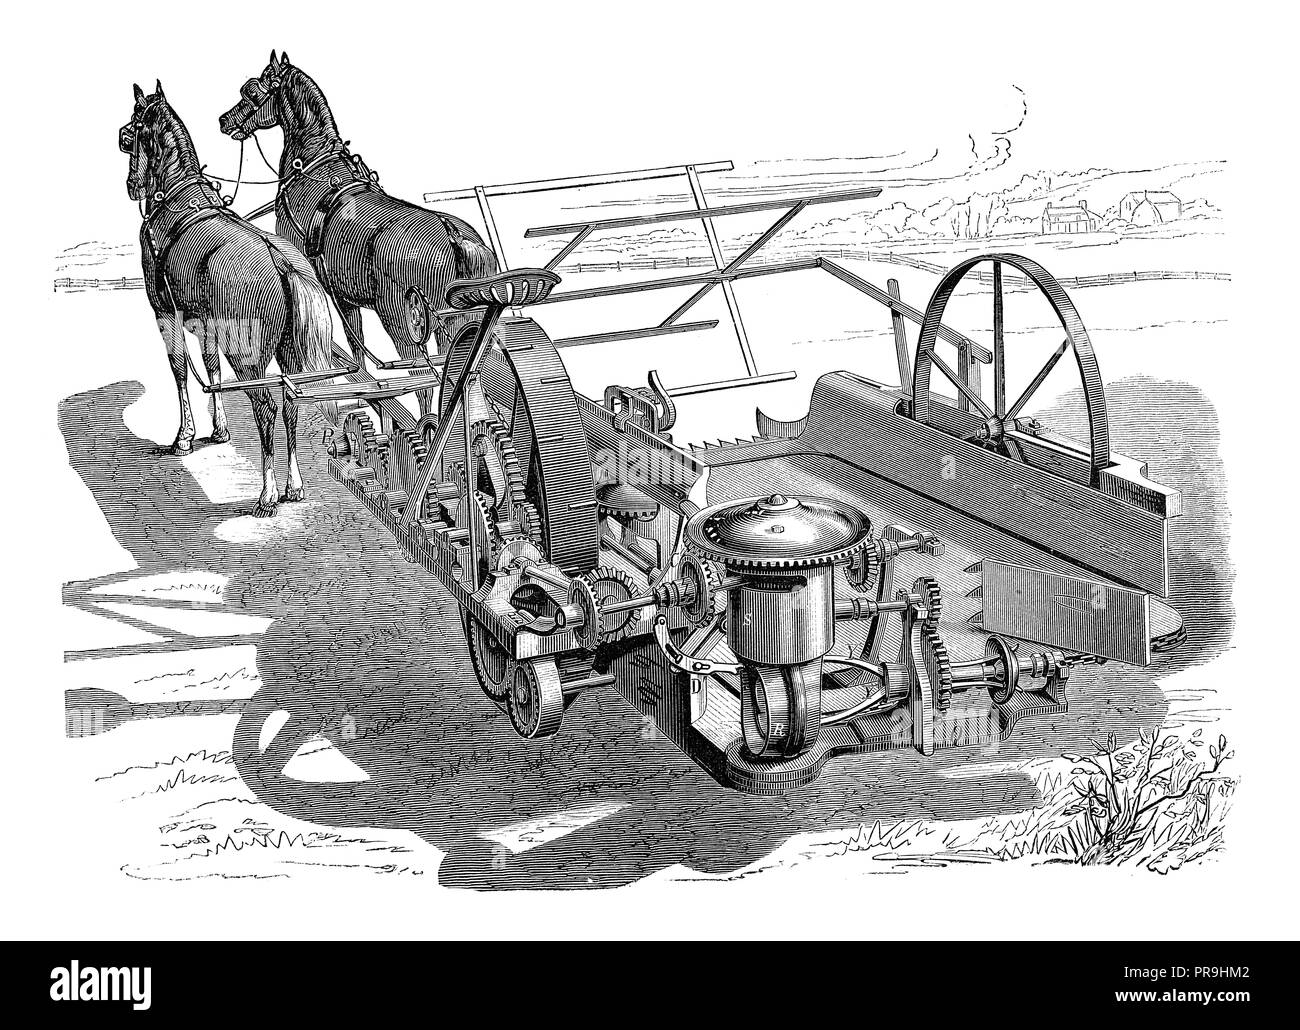 19th century illustration of a grain binder attachment to harvester. Published in 'The Practical Magazine, an Illustrated Cyclopedia of Industrial New - Stock Image